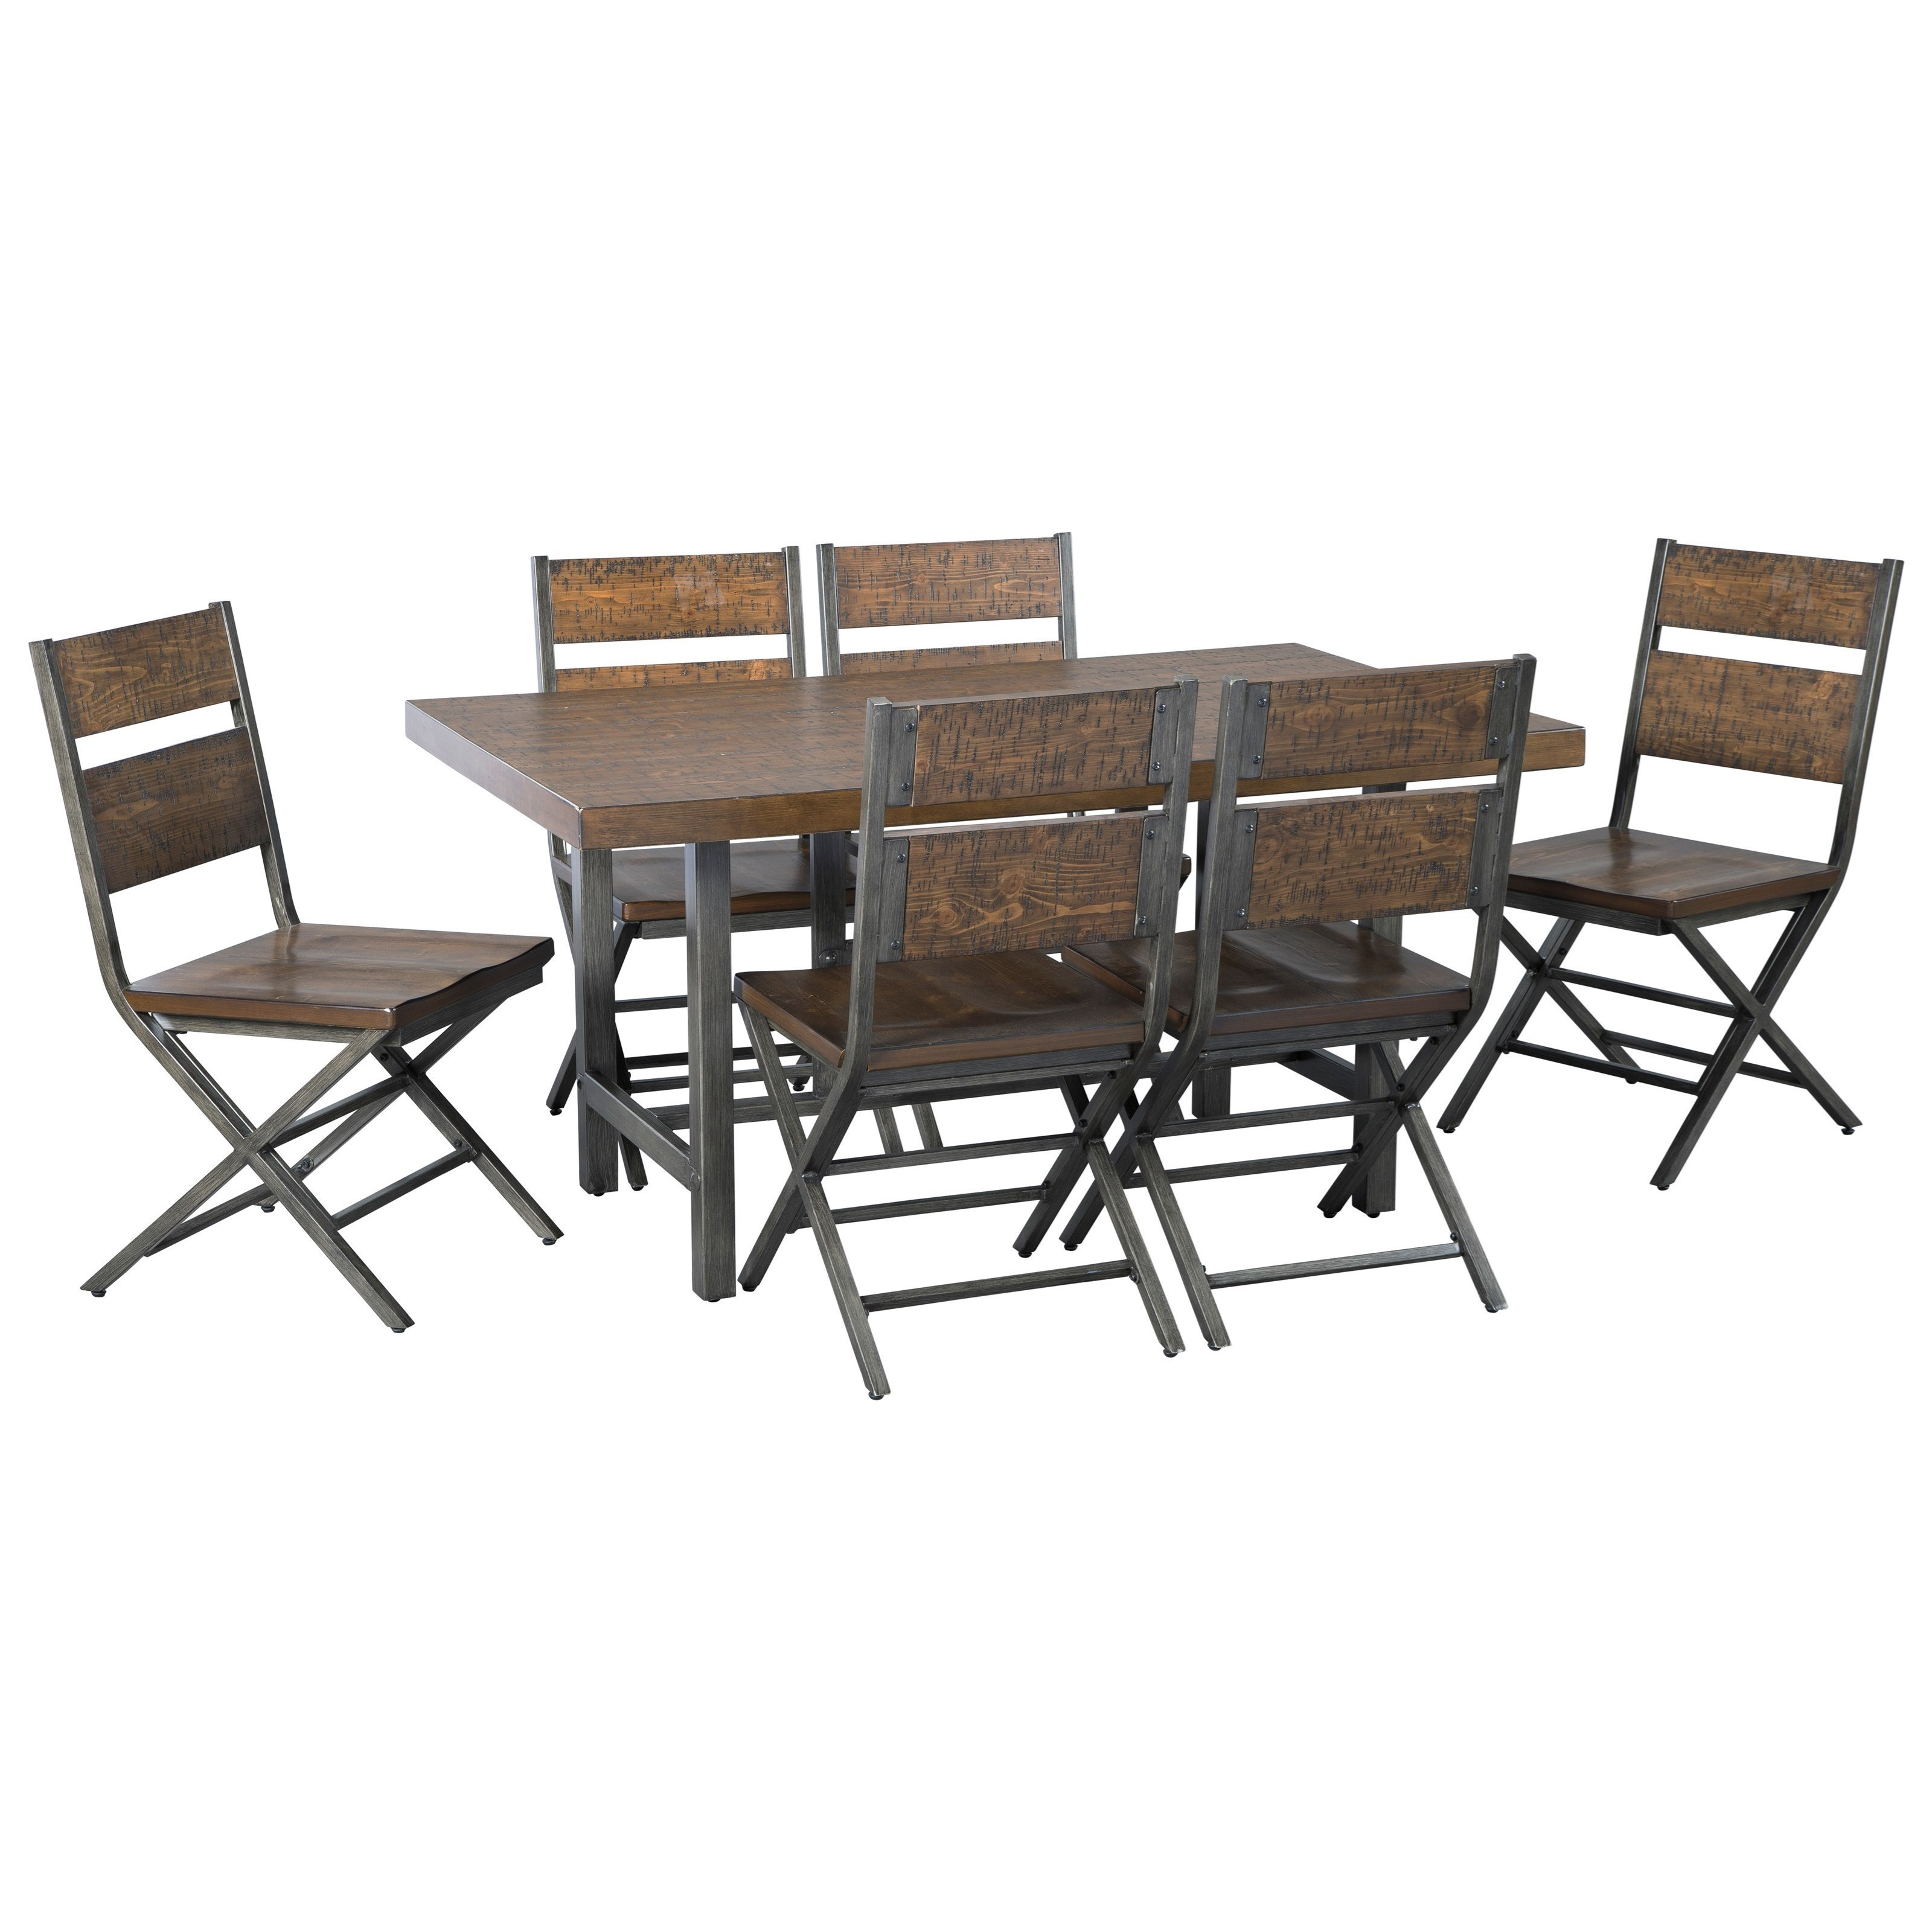 Signature Design by Ashley Kavara7-Piece Rectangular Dining Table Set ...  sc 1 st  Royal Furniture & Signature Design by Ashley Kavara 7-Piece Distressed Pine/Metal ...